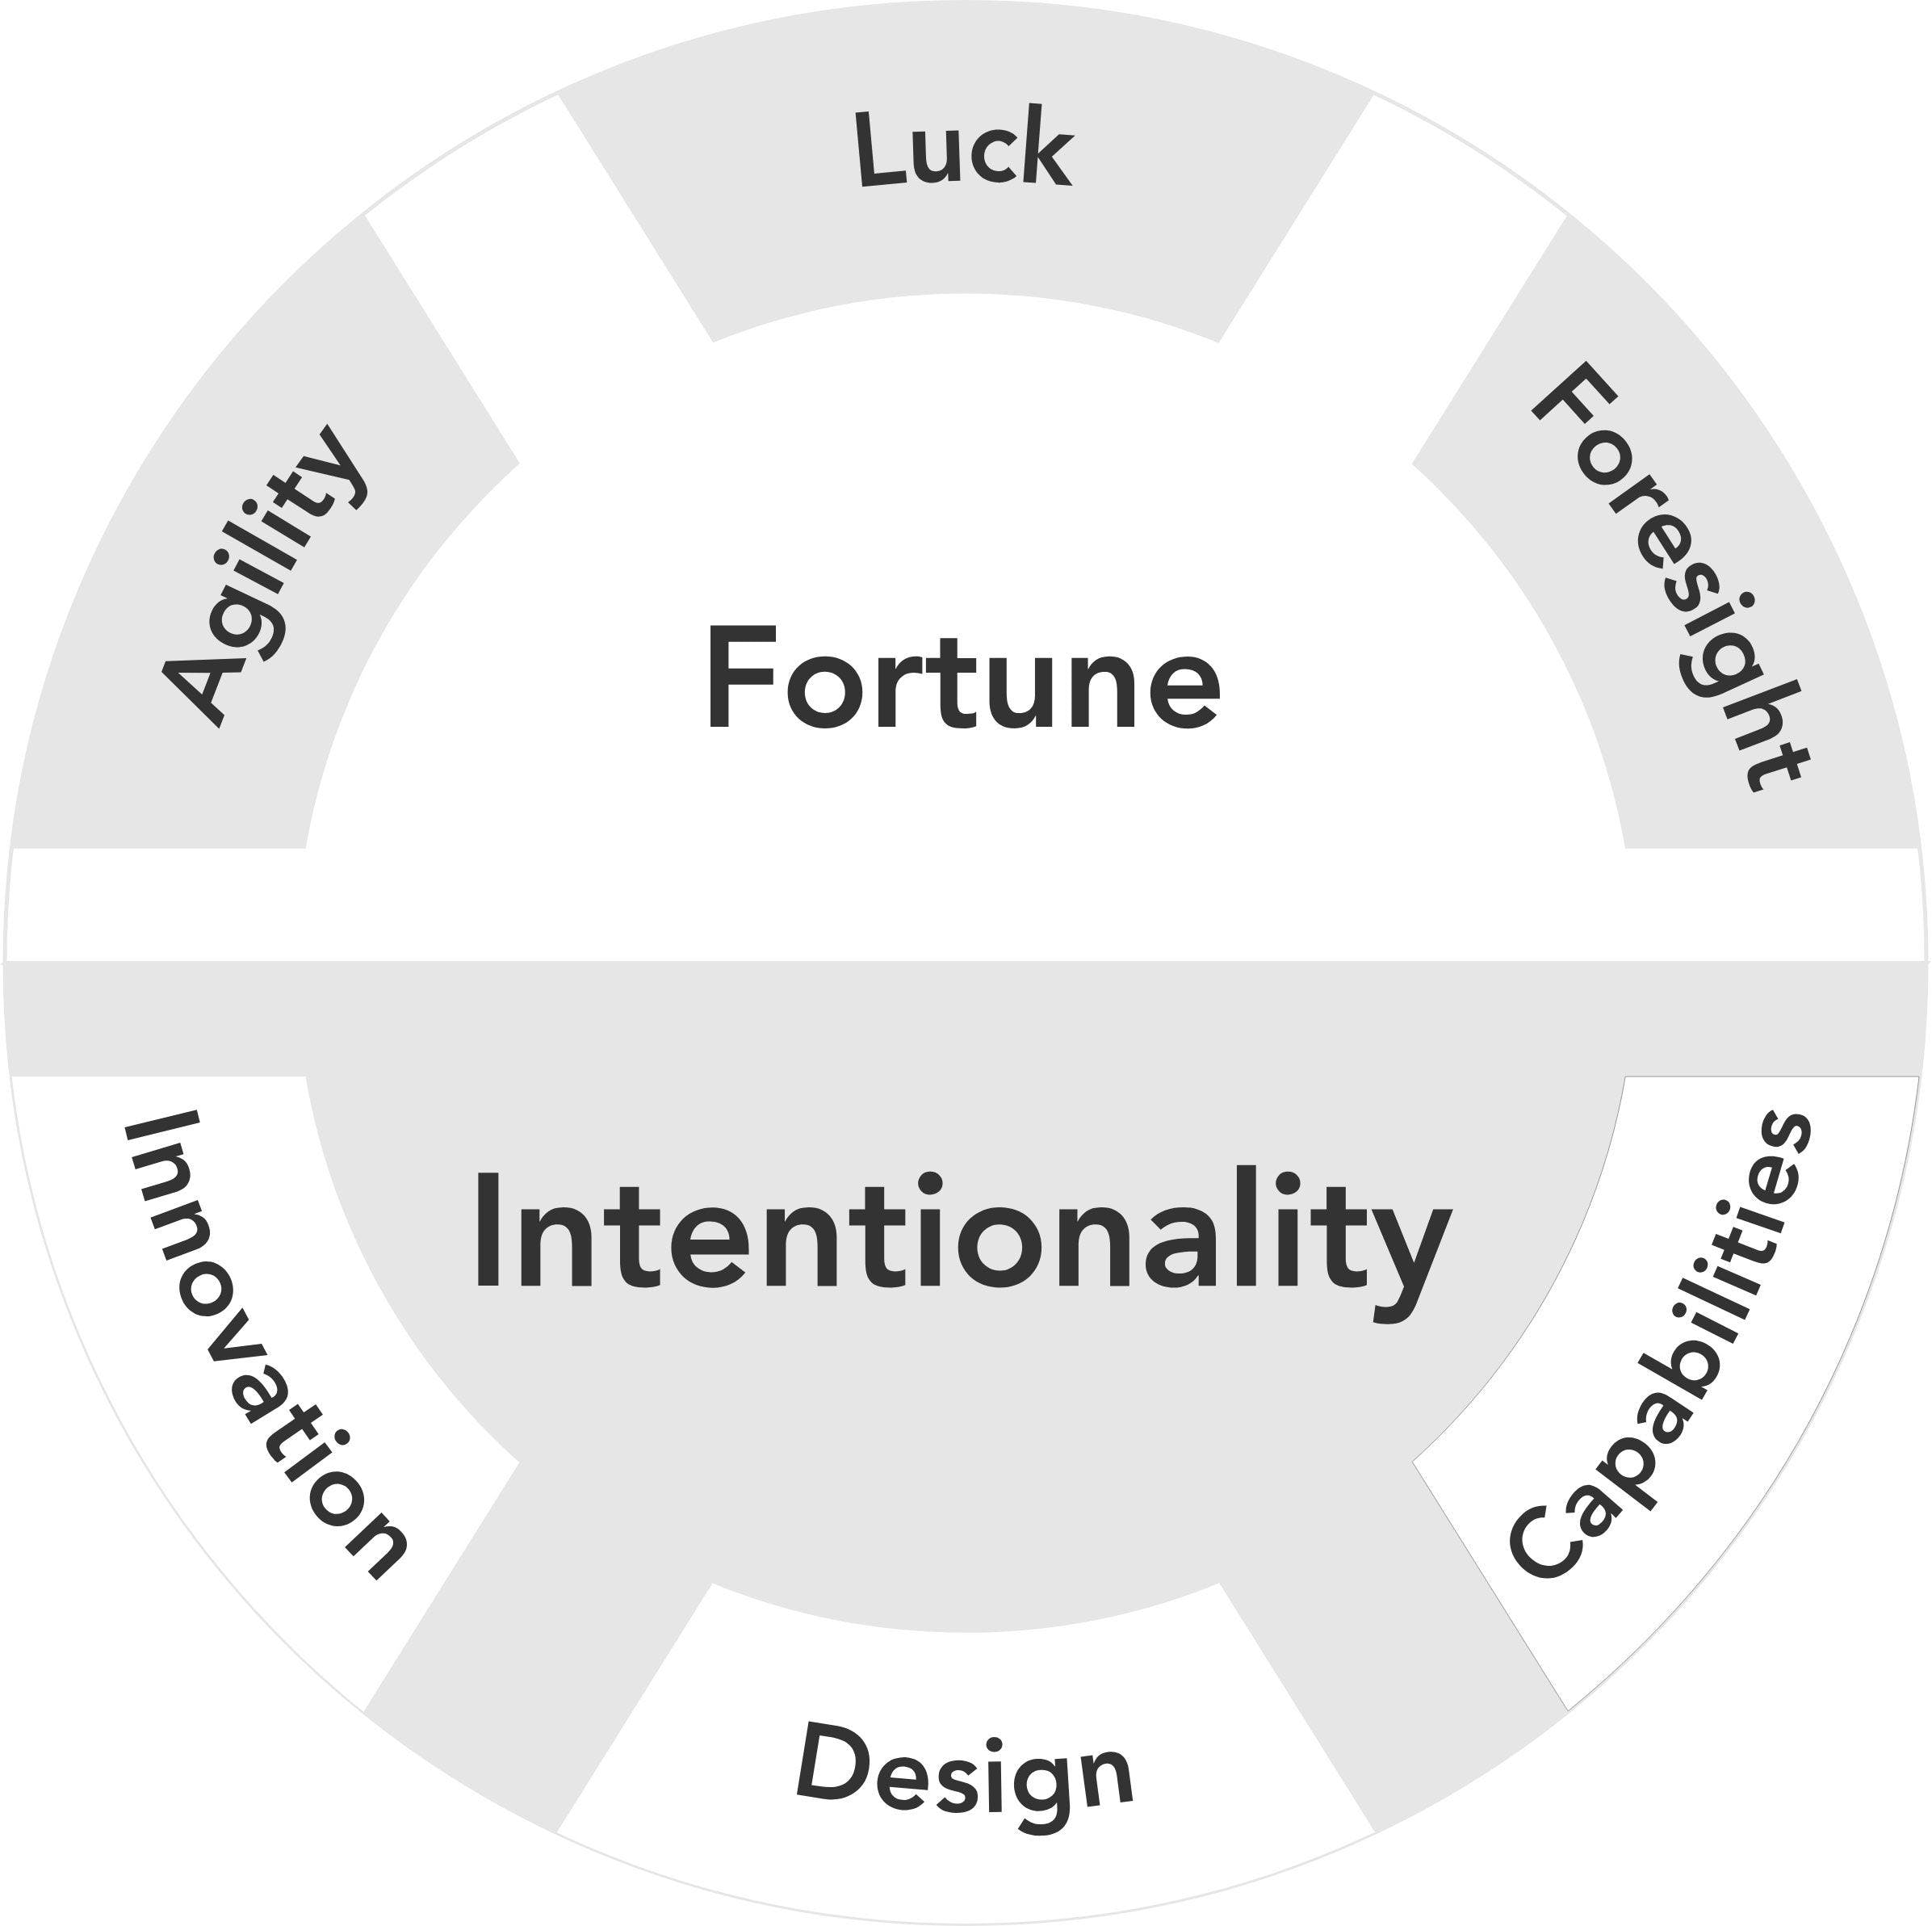 There is a tension between answers that emphasize favorable outcomes under conditions of uncertainty and those that assert intentionality.